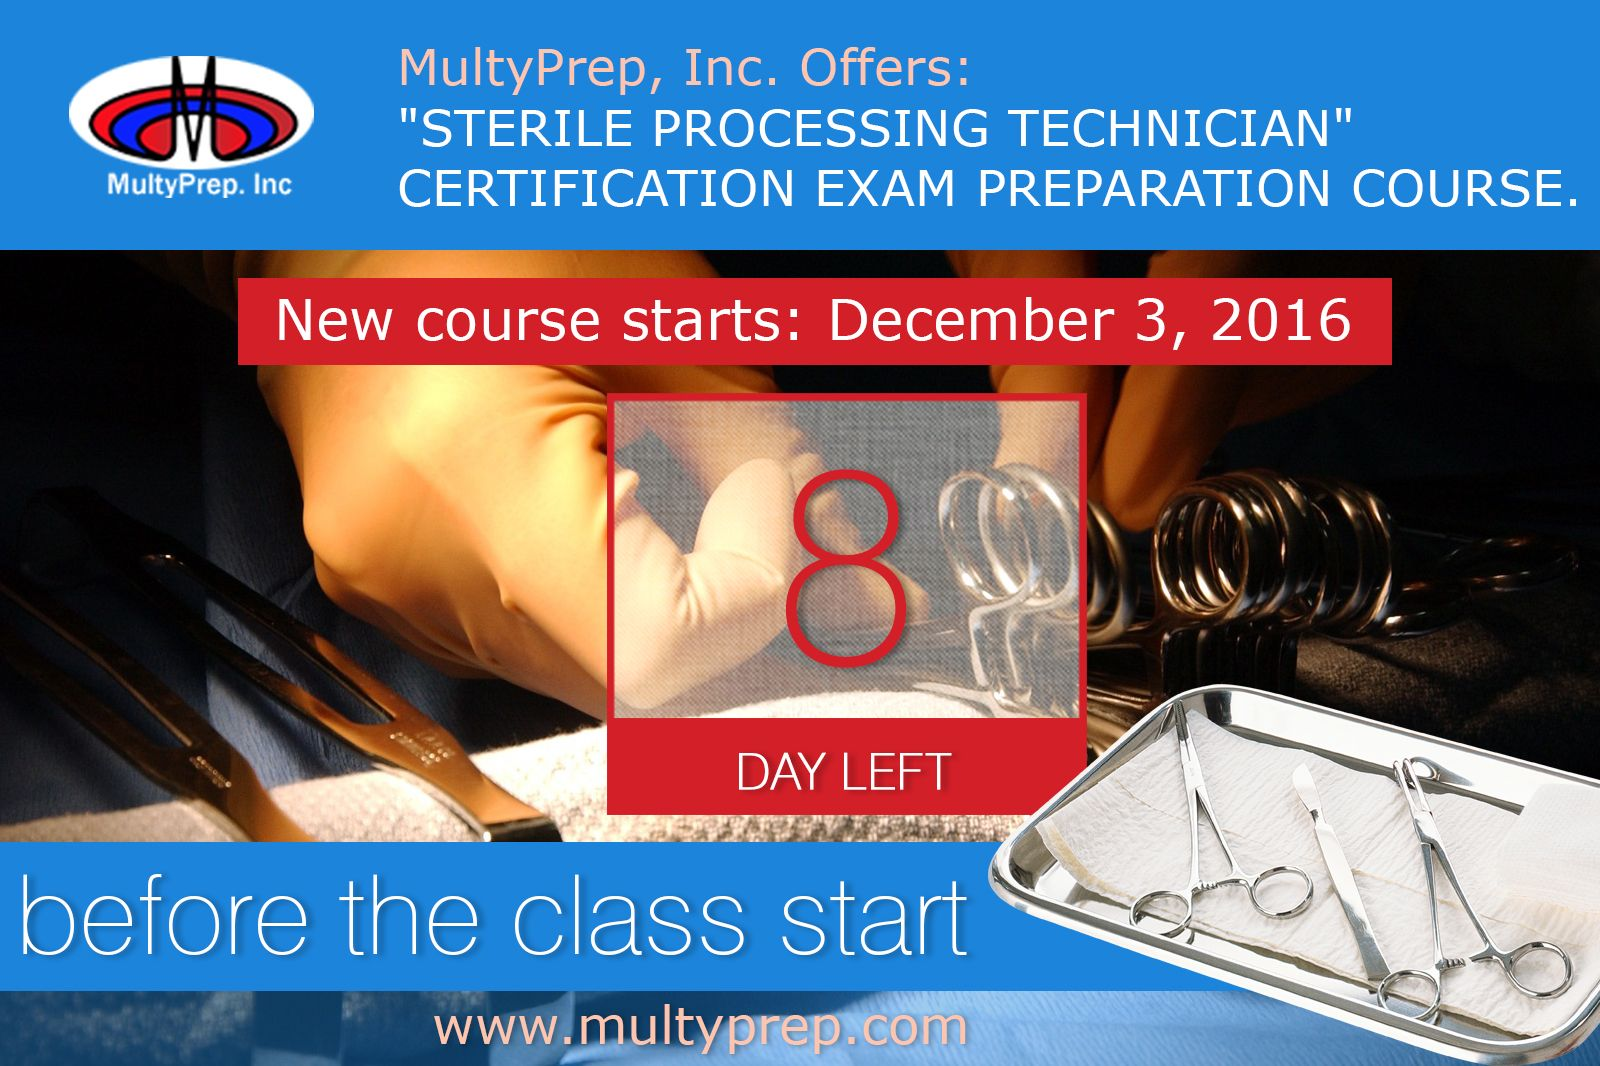 8 Days Left Before The Class Start Details At Httpmultyprep